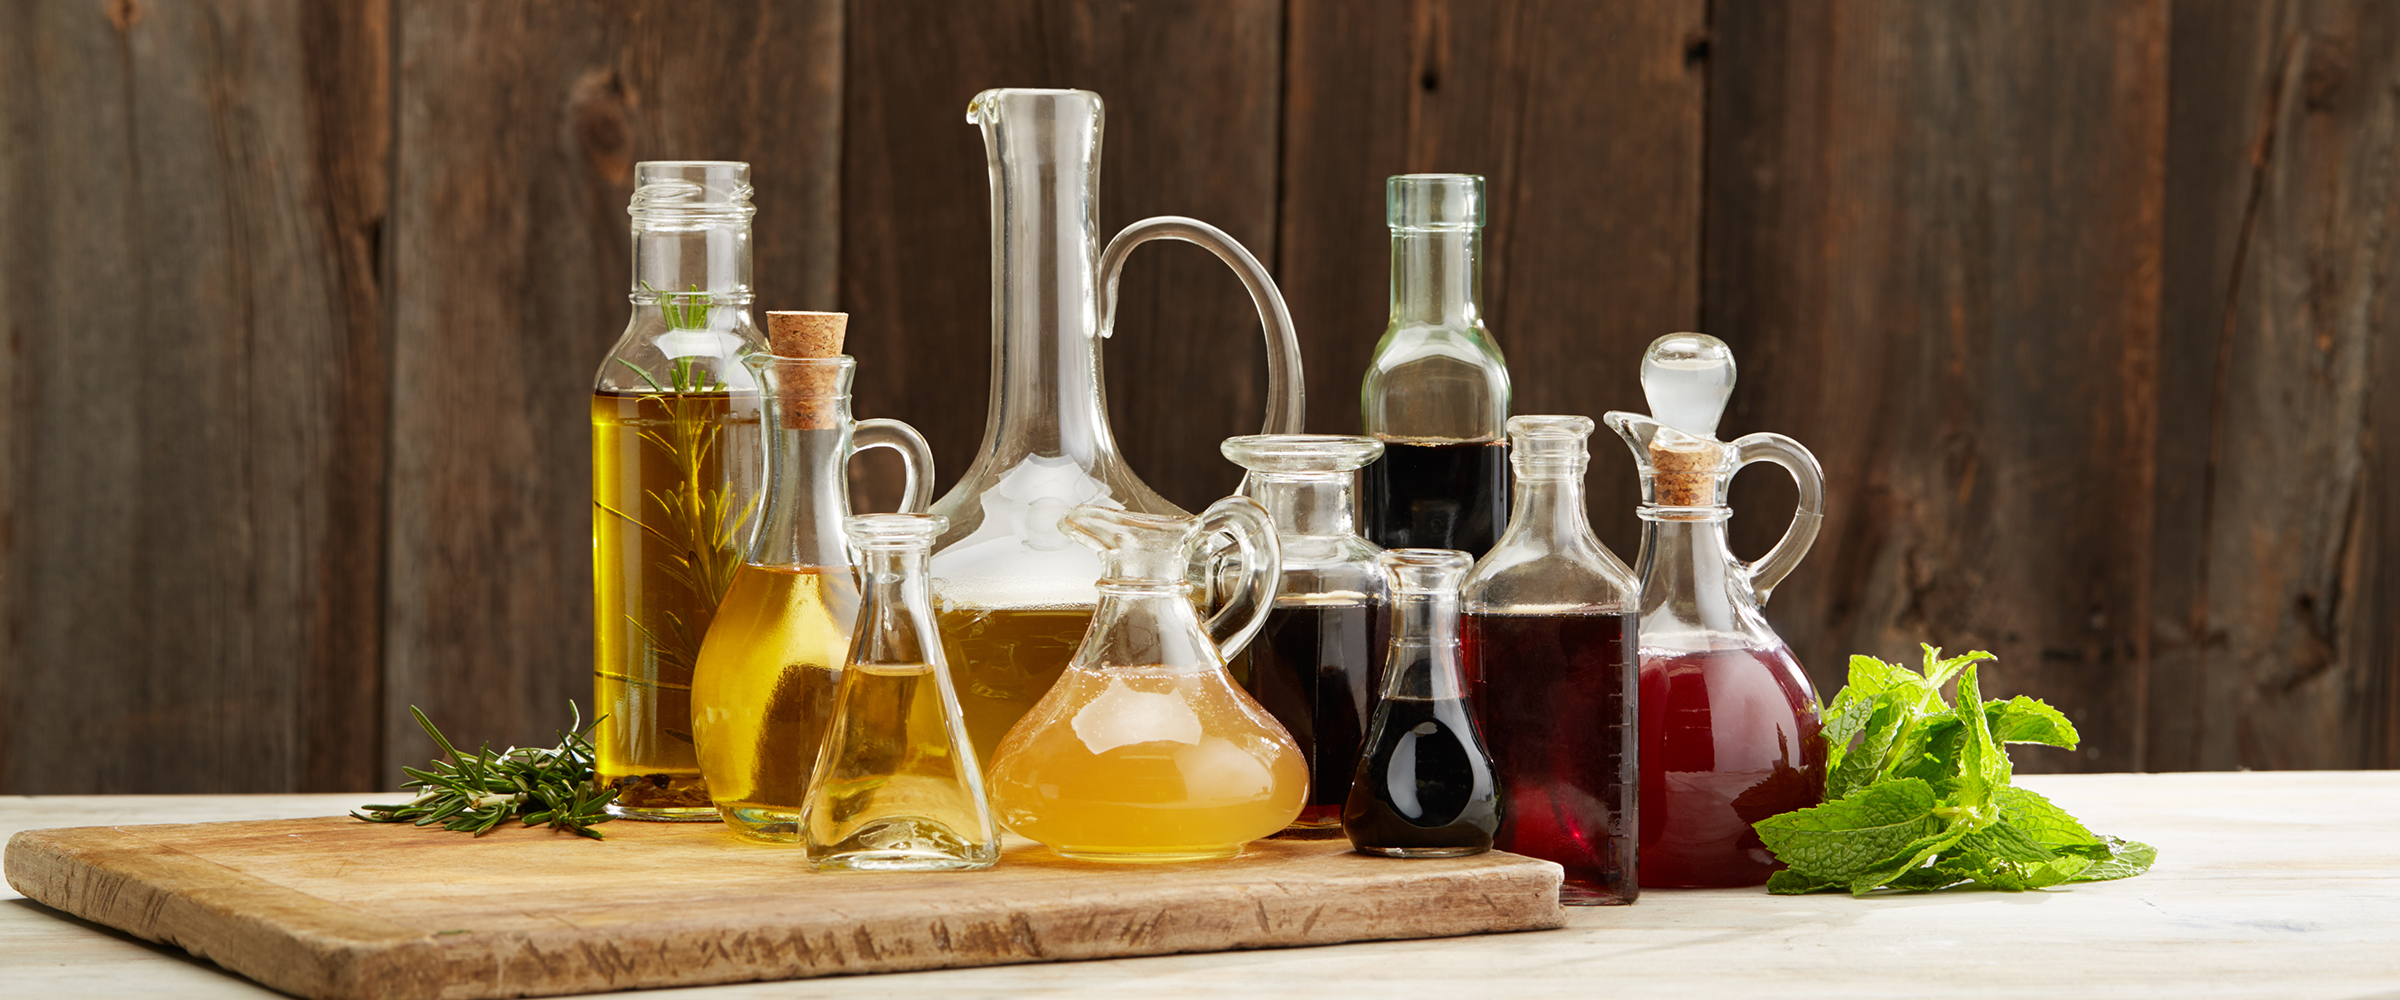 Oil & Vinegars